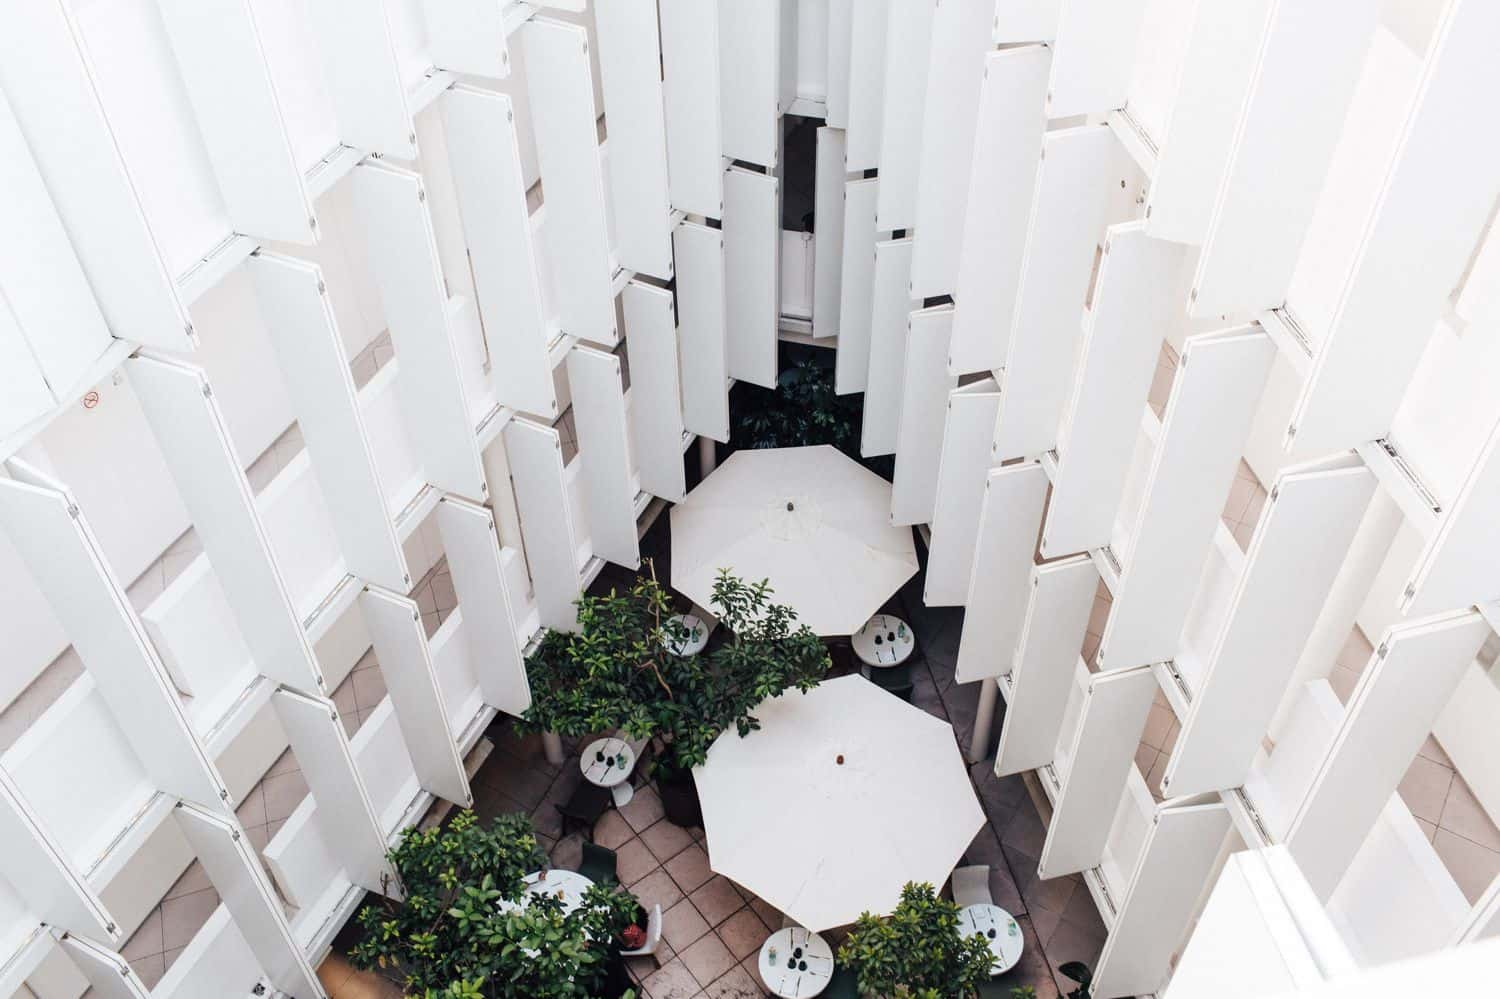 birds-eye view of a whitewashed atrium